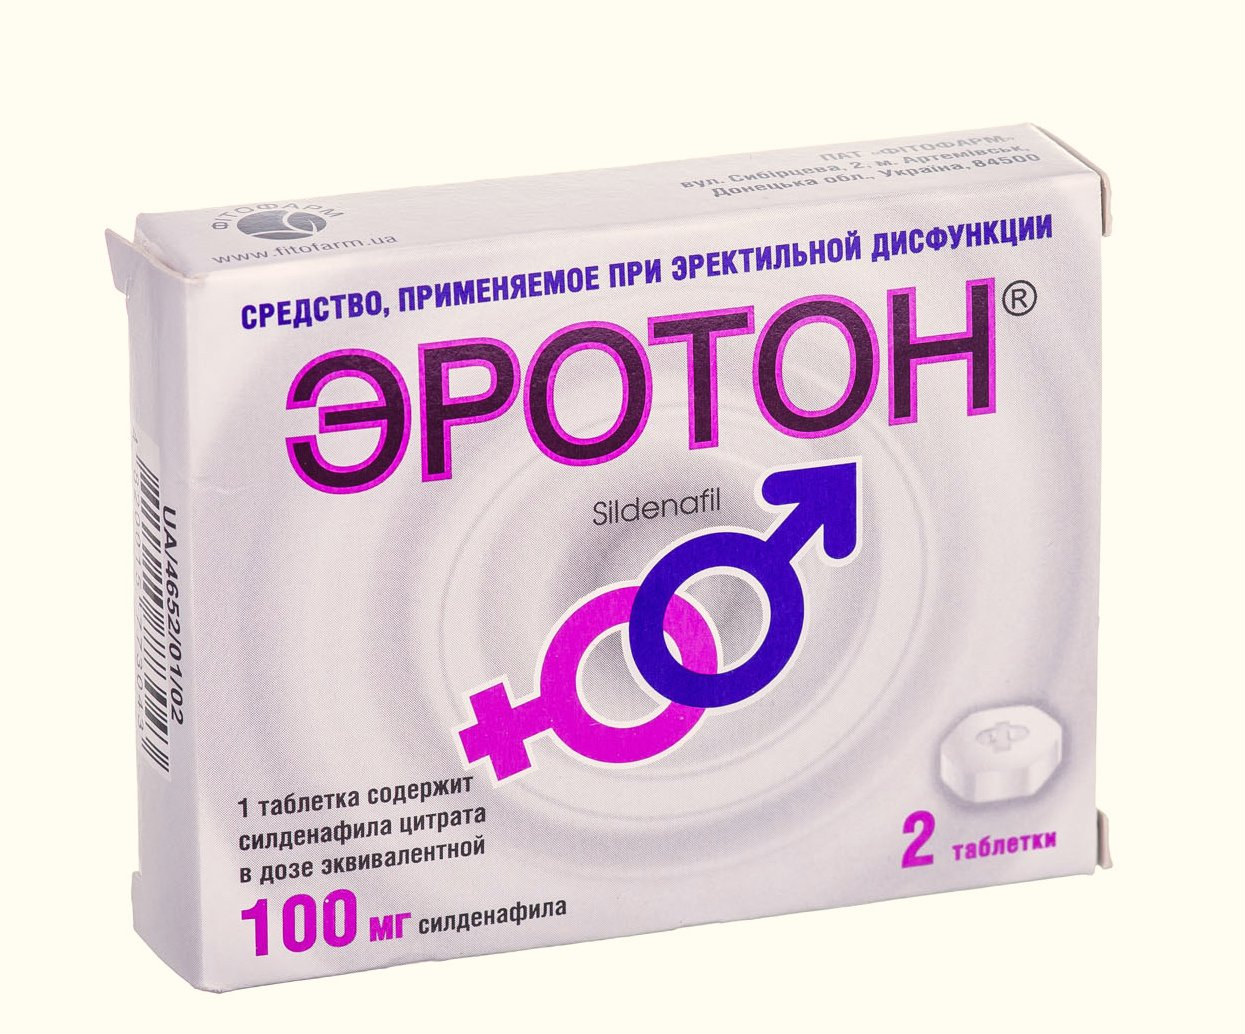 Eroton (sildenafil) tablets 100 mg. №2